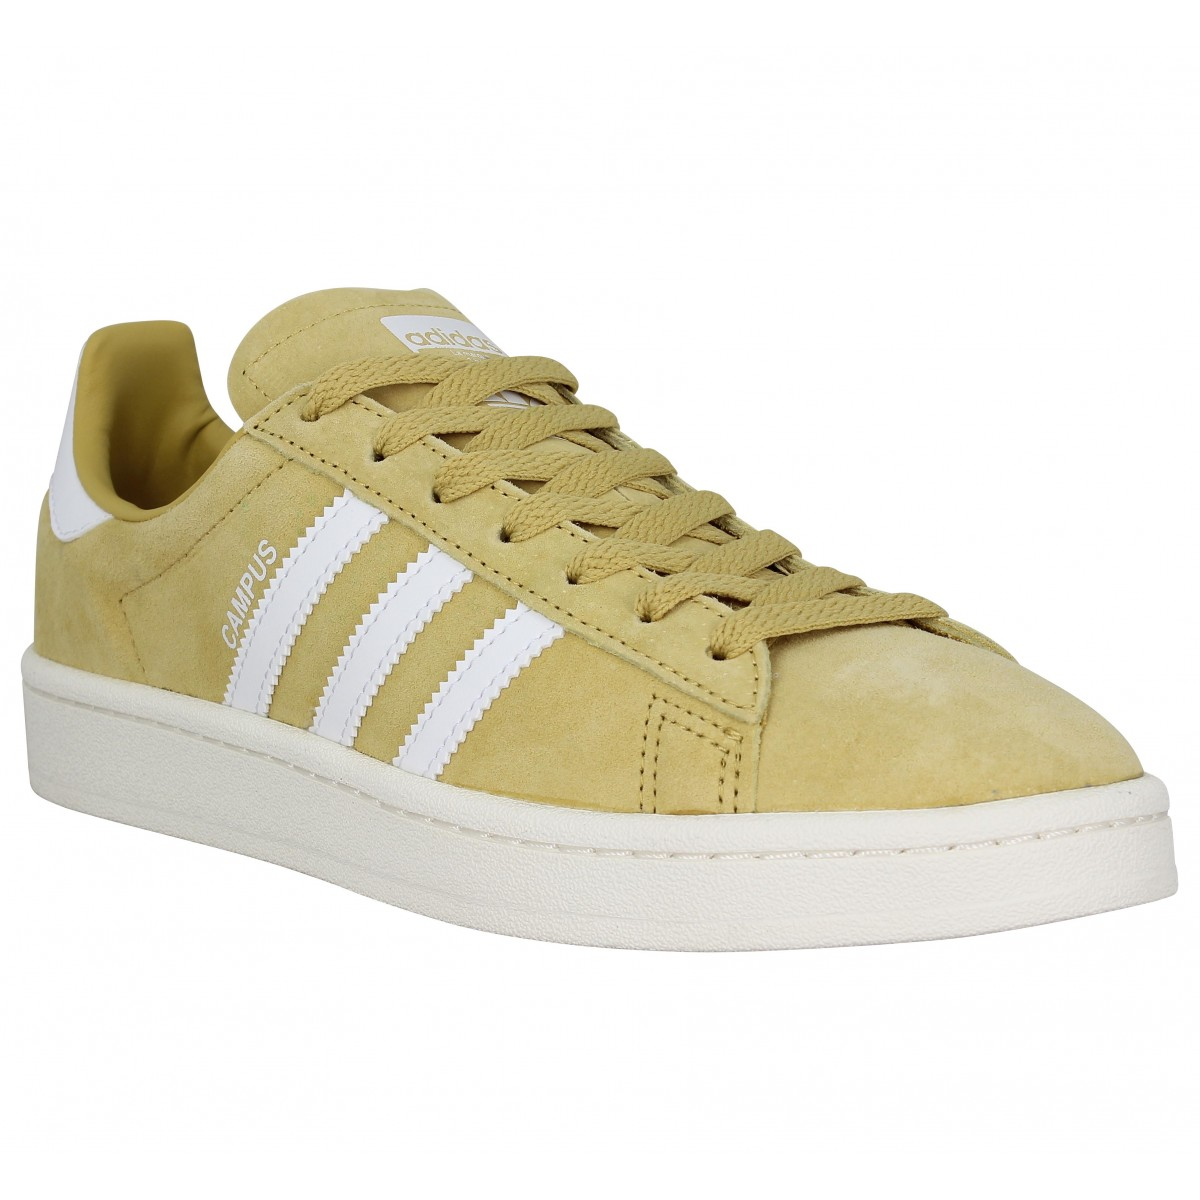 Baskets ADIDAS Campus velours Pyrite